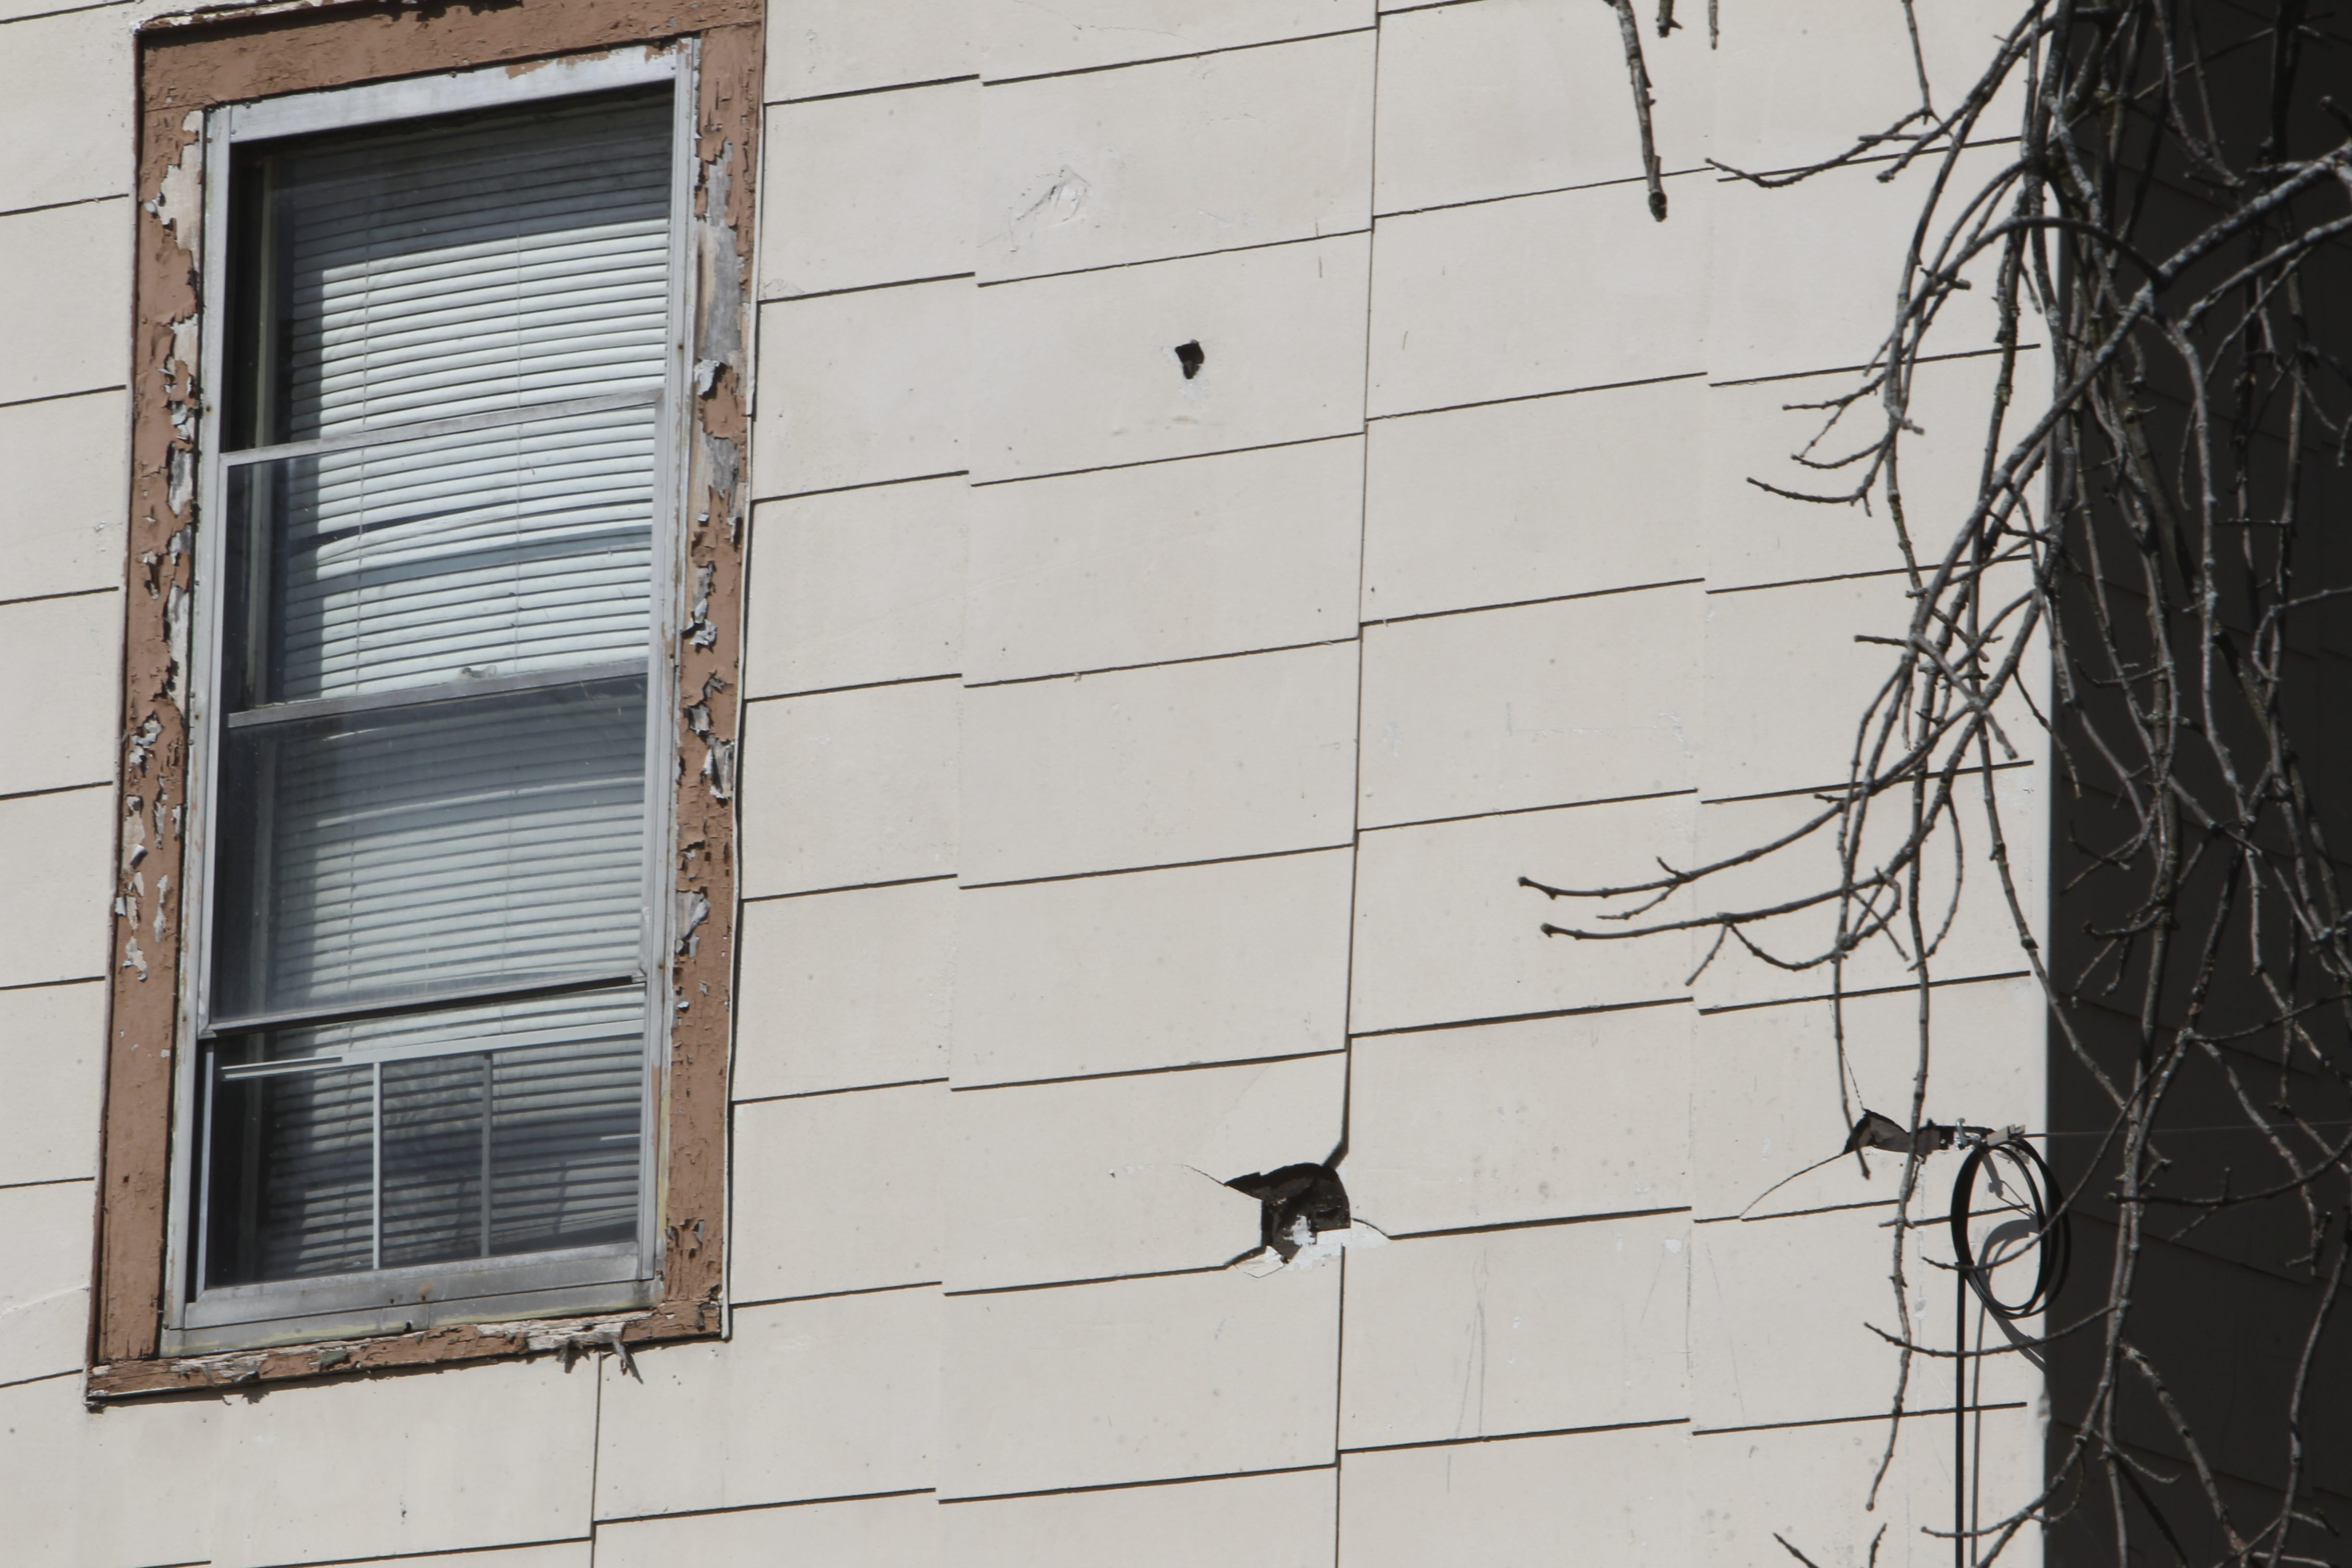 Holes in the exterior tiles and peeling paint around windows are two deficiencies noted on the city's inspection report for 400 N. Salisbury St. Owner Gary Lane said he intends to repair the exterior and paint it.